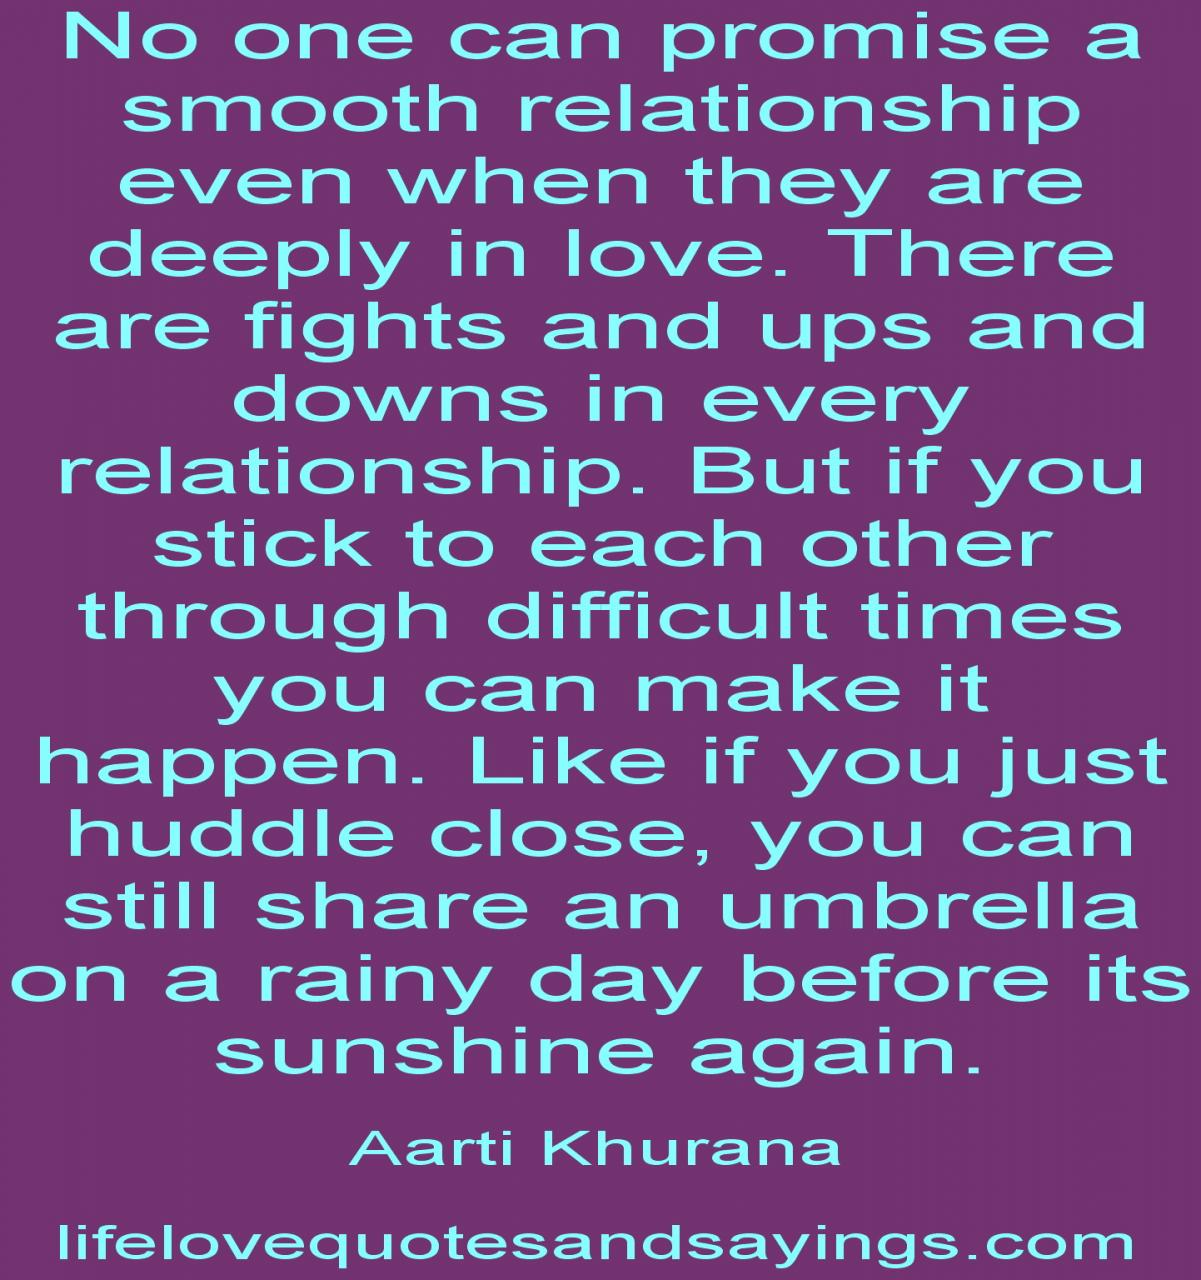 The Ups And Downs Of Love Quotes Quotes For Relationship Fights Quotes About Relationship